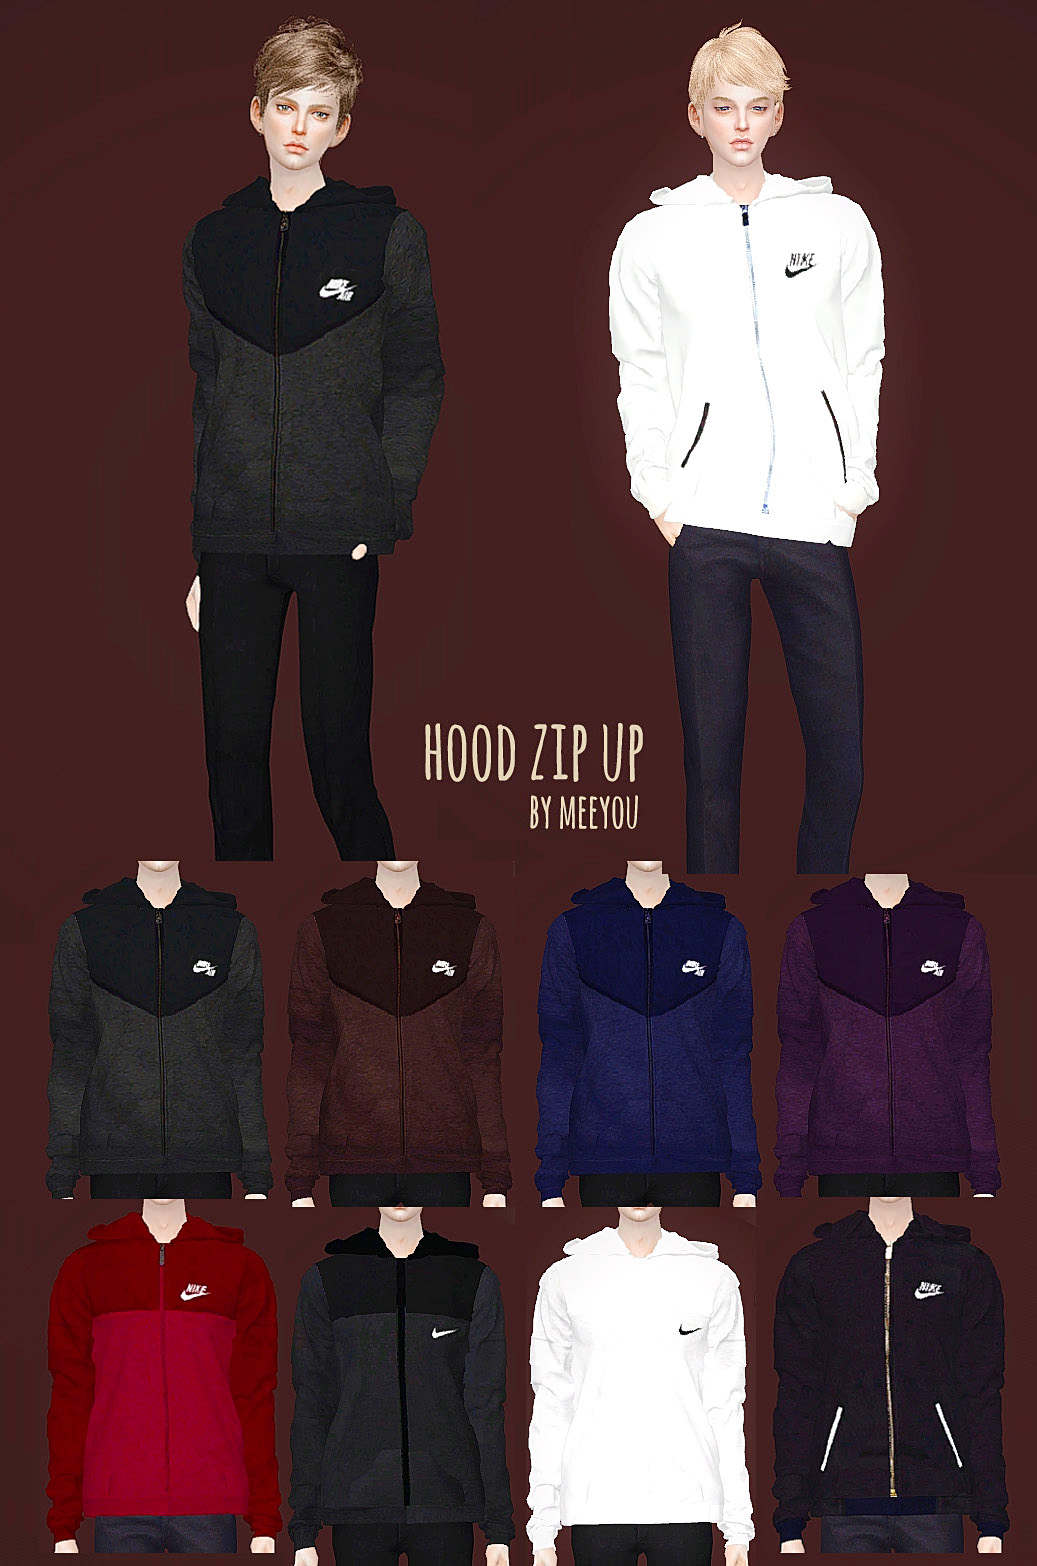 M_Nike hood zip up by Meeyou_x